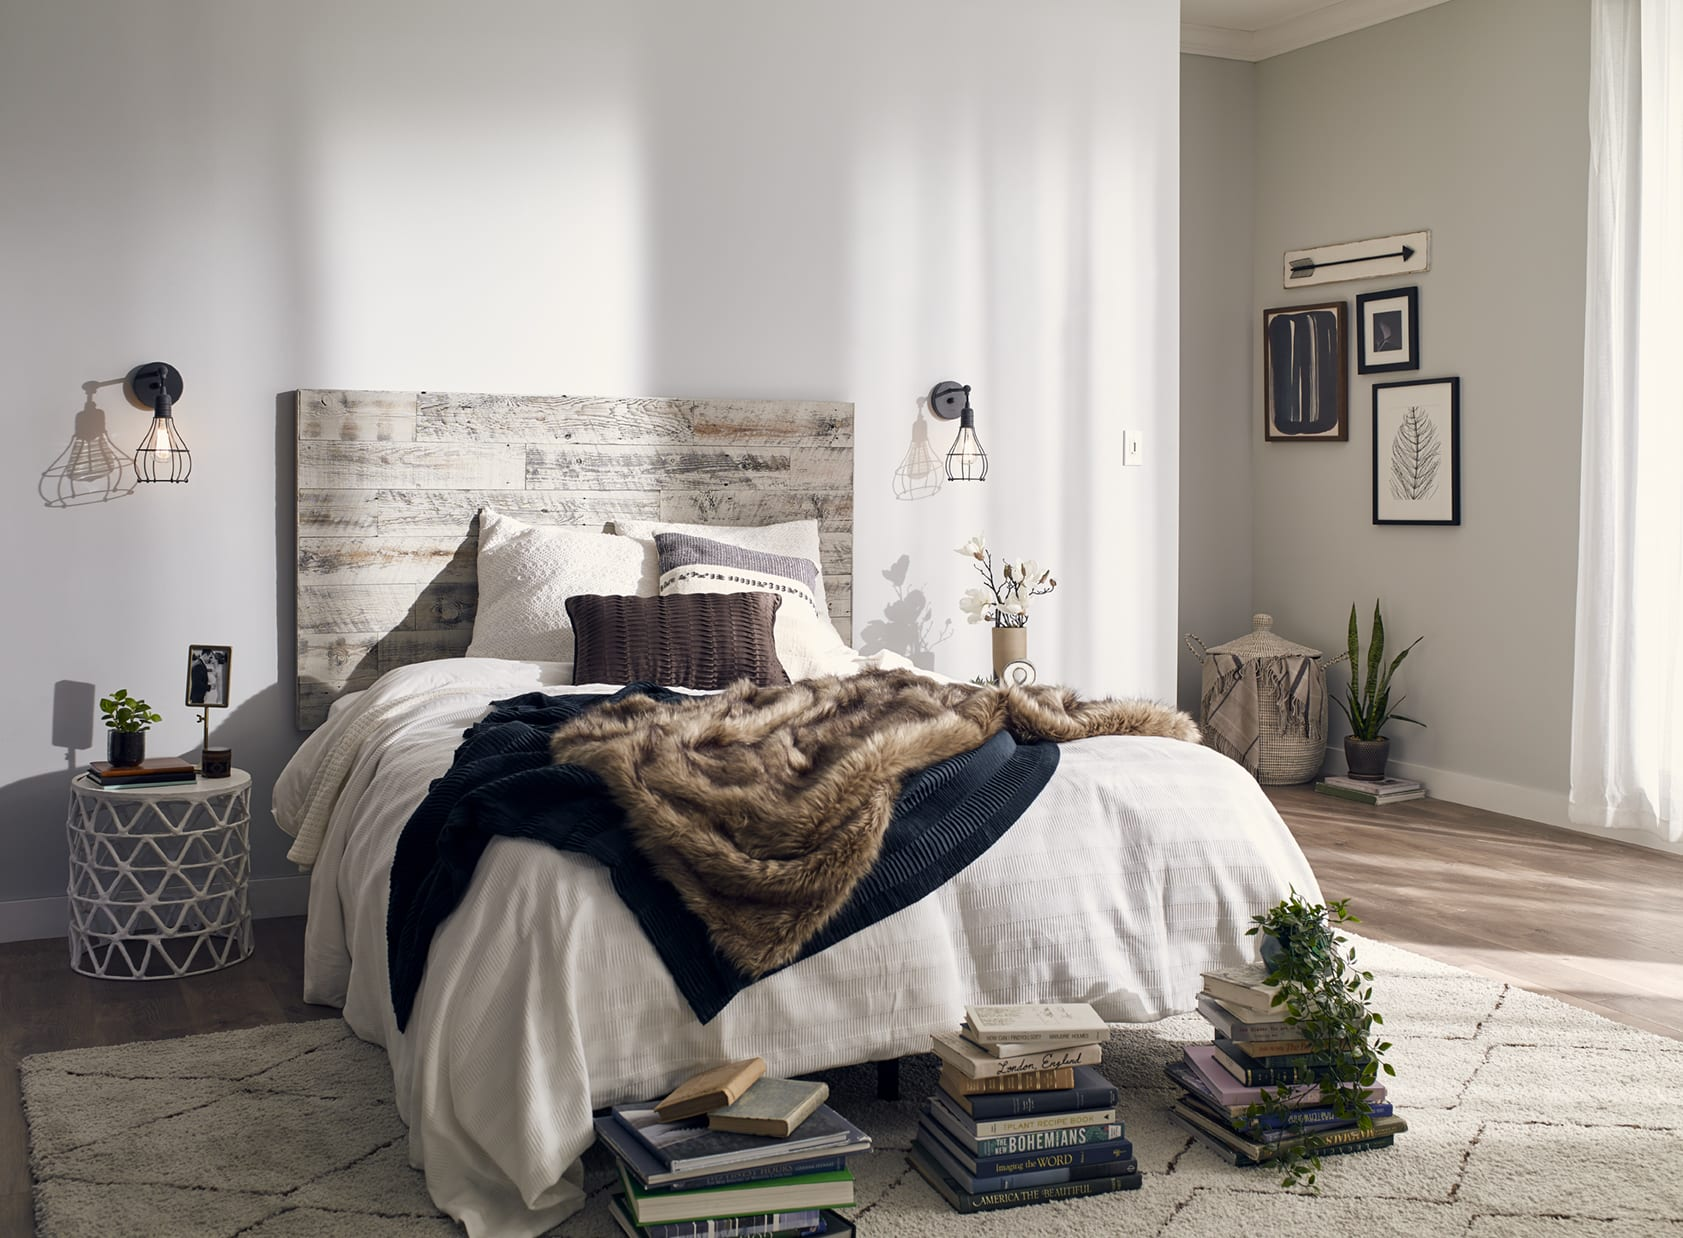 Light and bright contemporary bedroom with comfortable bed and a Stikwood Stikits reclaimed wood DIY headboard kit.